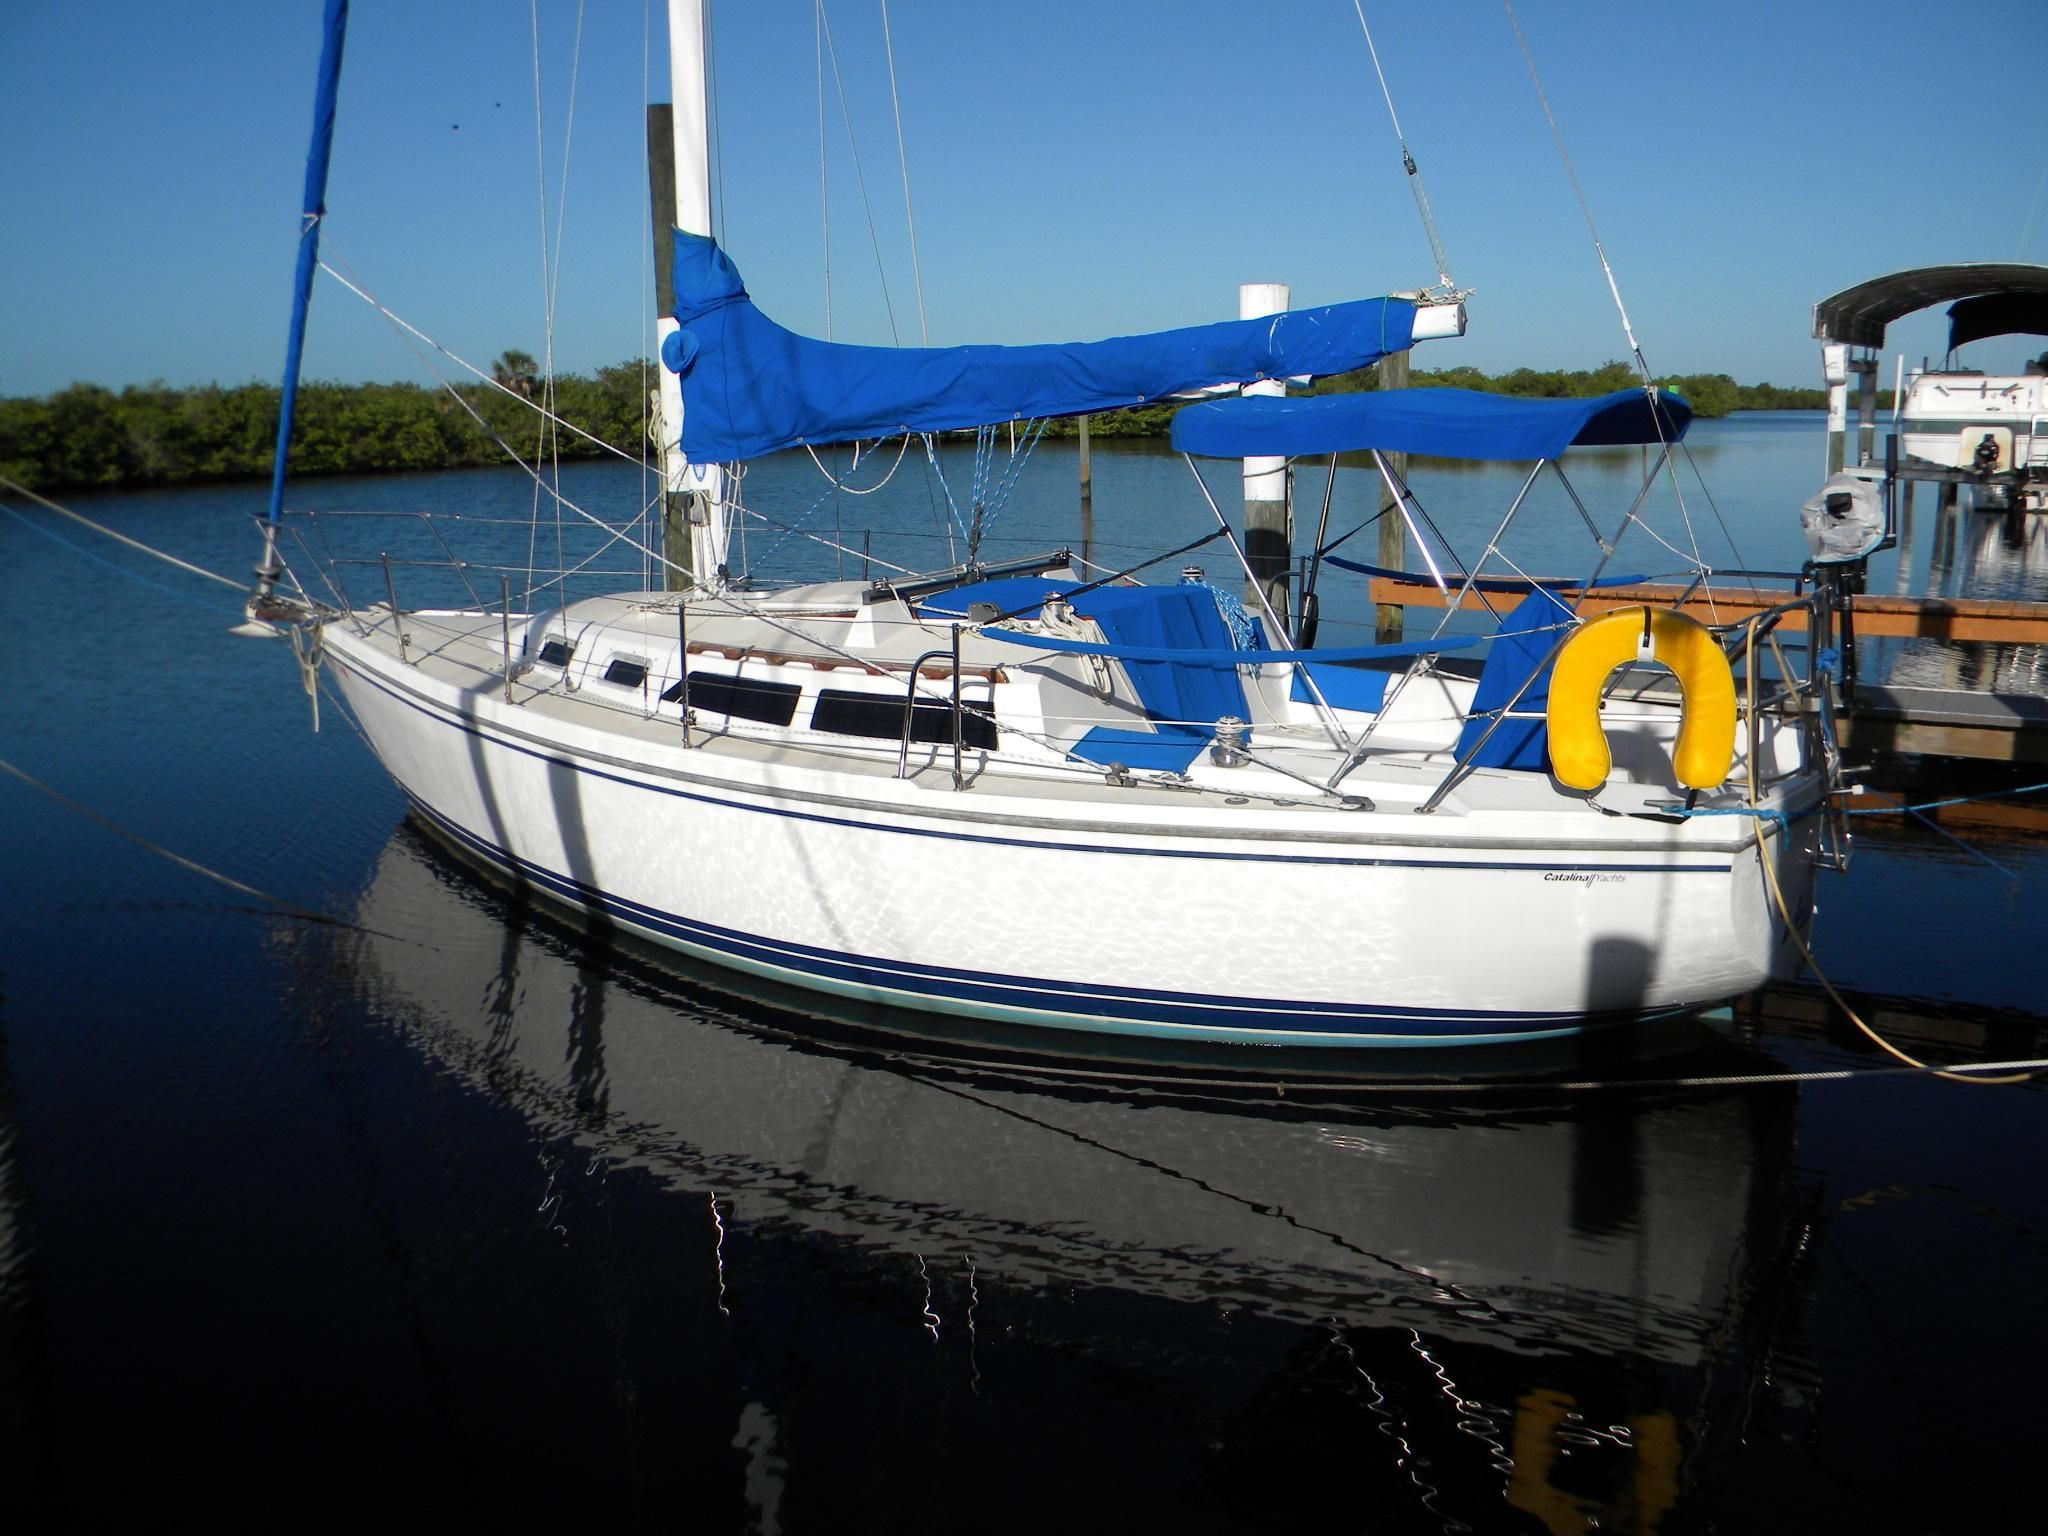 The Catalina 30 Used Boat Review